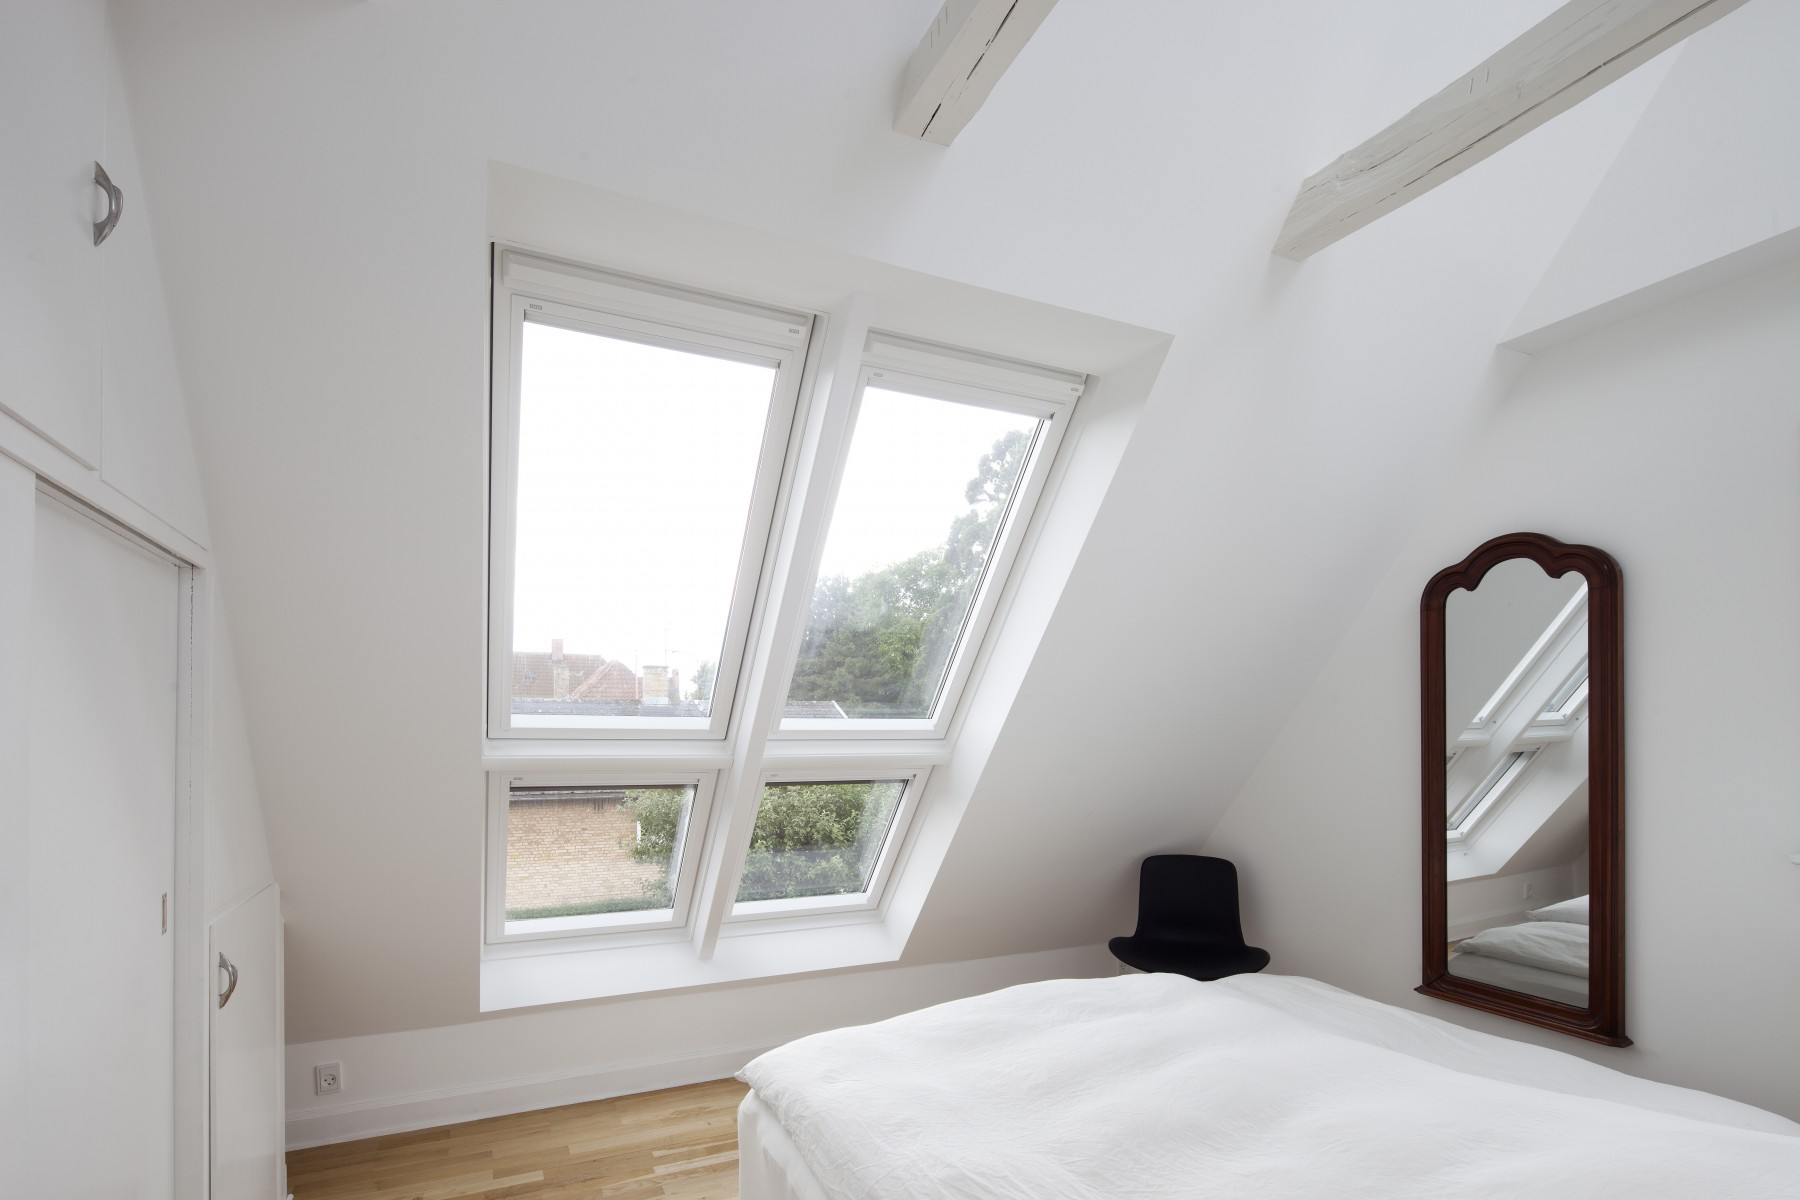 New windows can cause a significant increase of value and sales potential